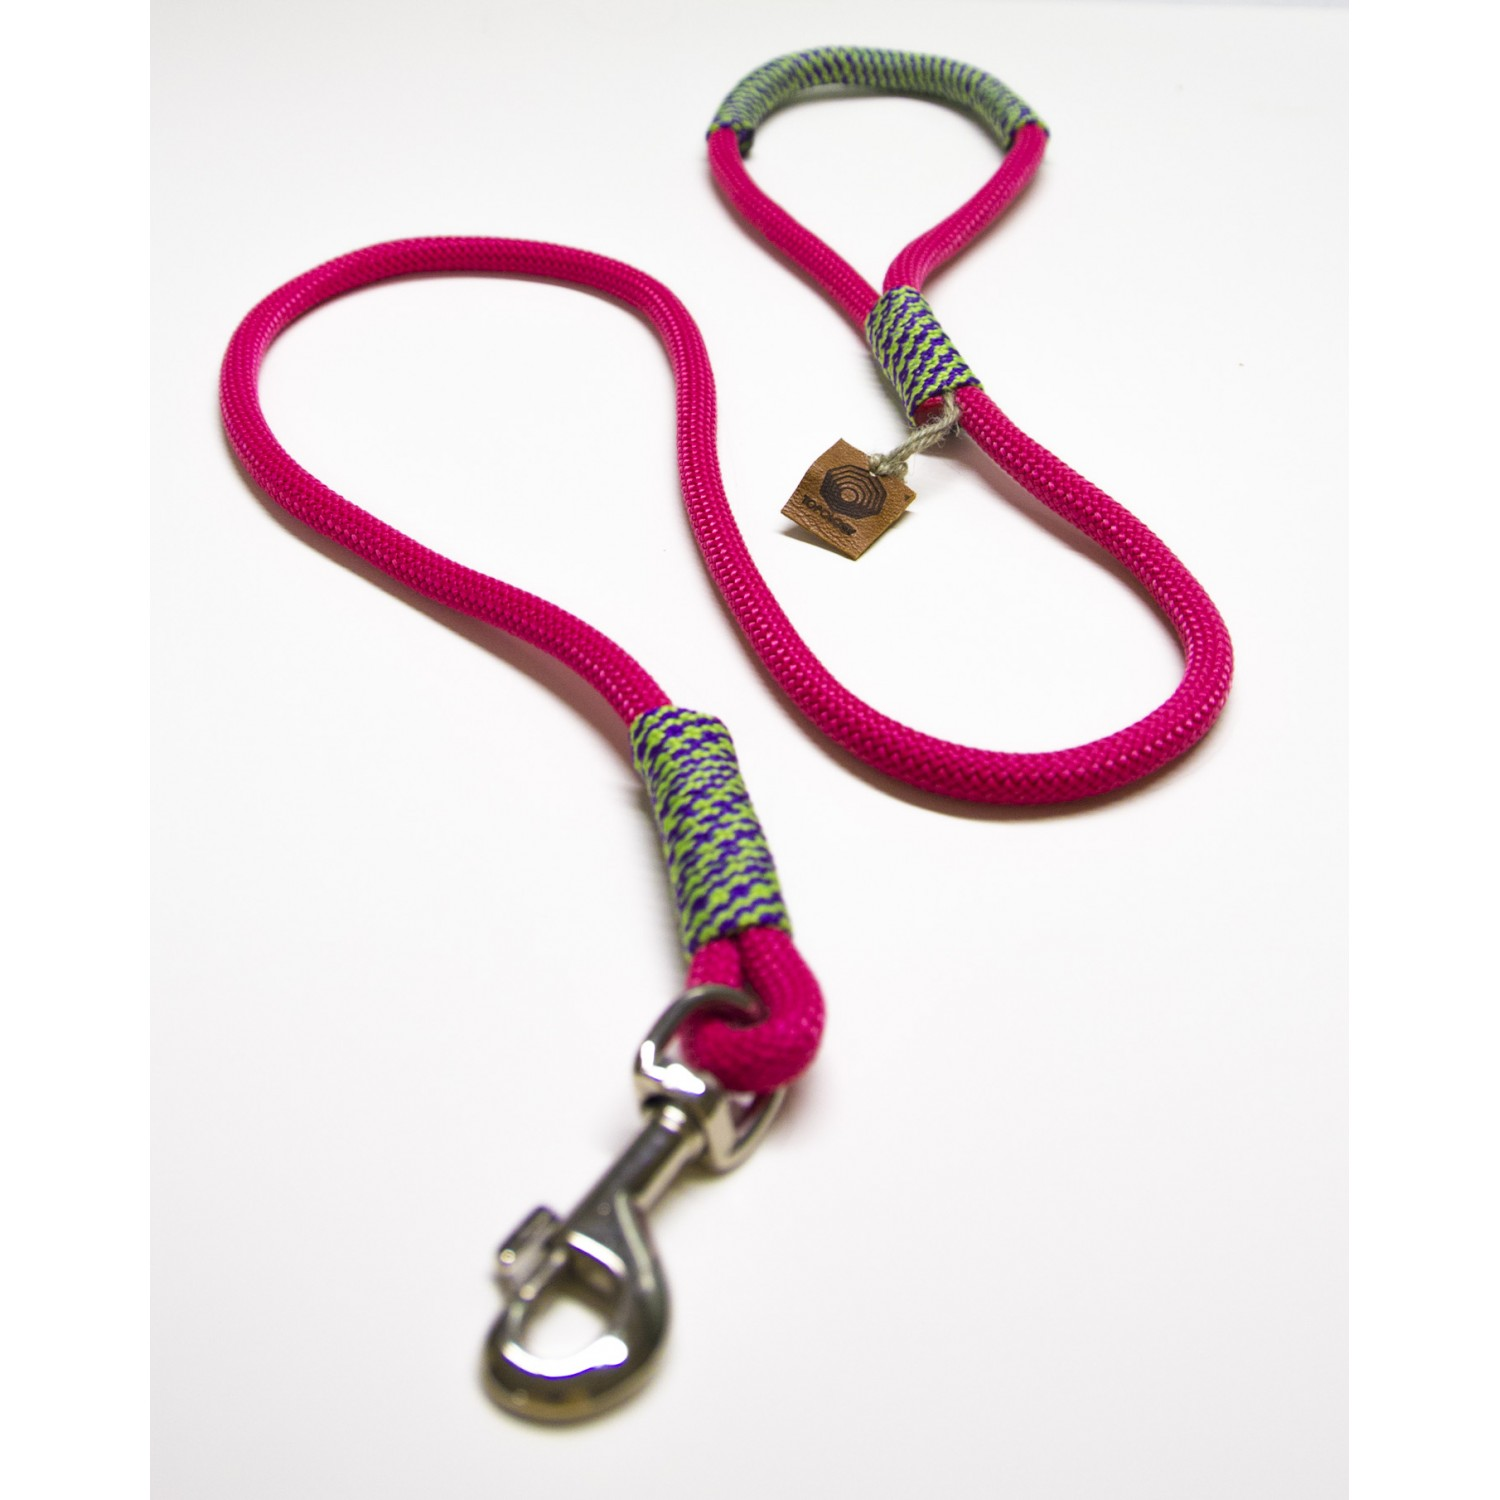 Neon Hot Pink & Lime Rope Dog Leash